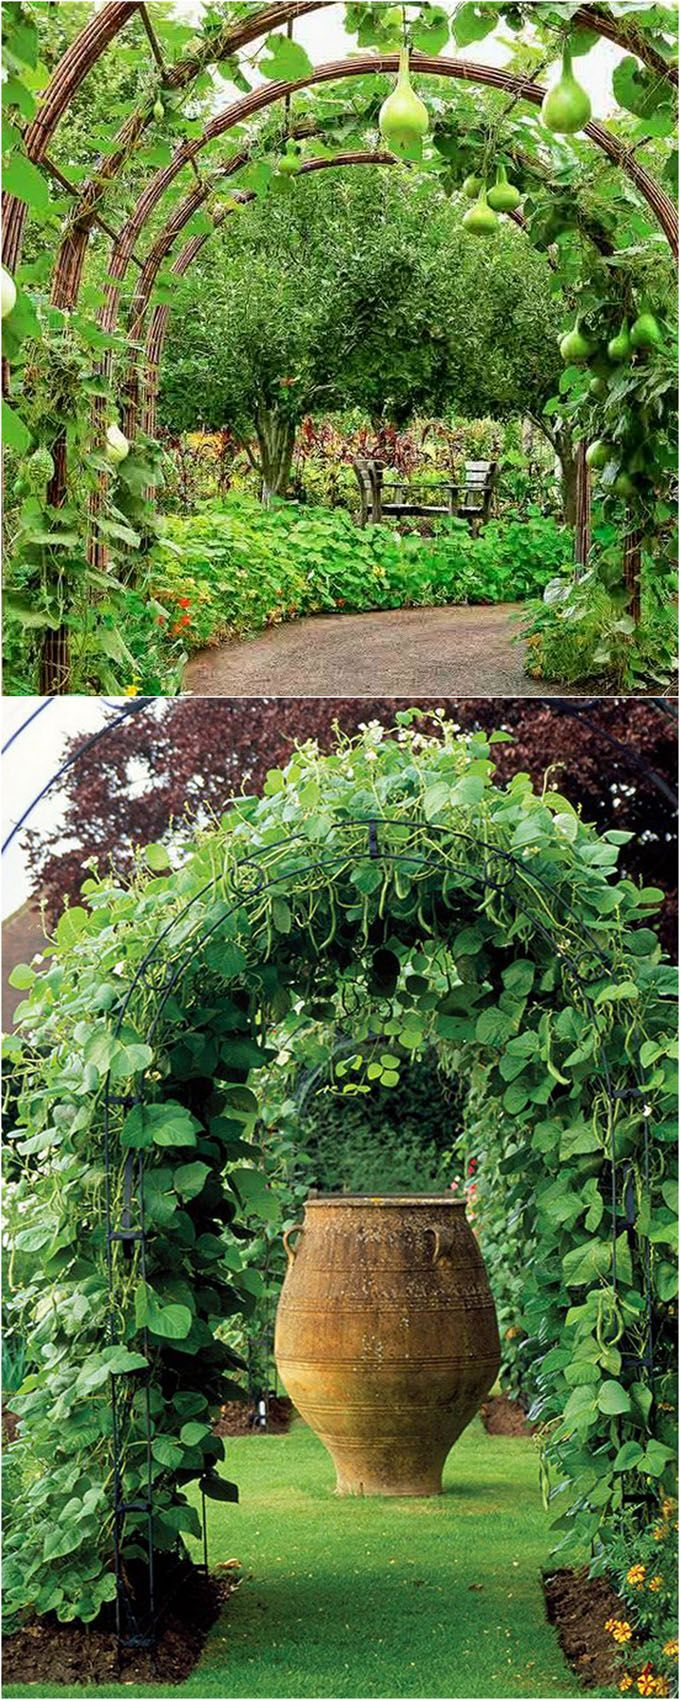 21 Easy Diy Garden Trellis Ideas Vertical Growing Structures Hometalk How To Color Code Your Circuit Breaker Box Gardening Pinterest And